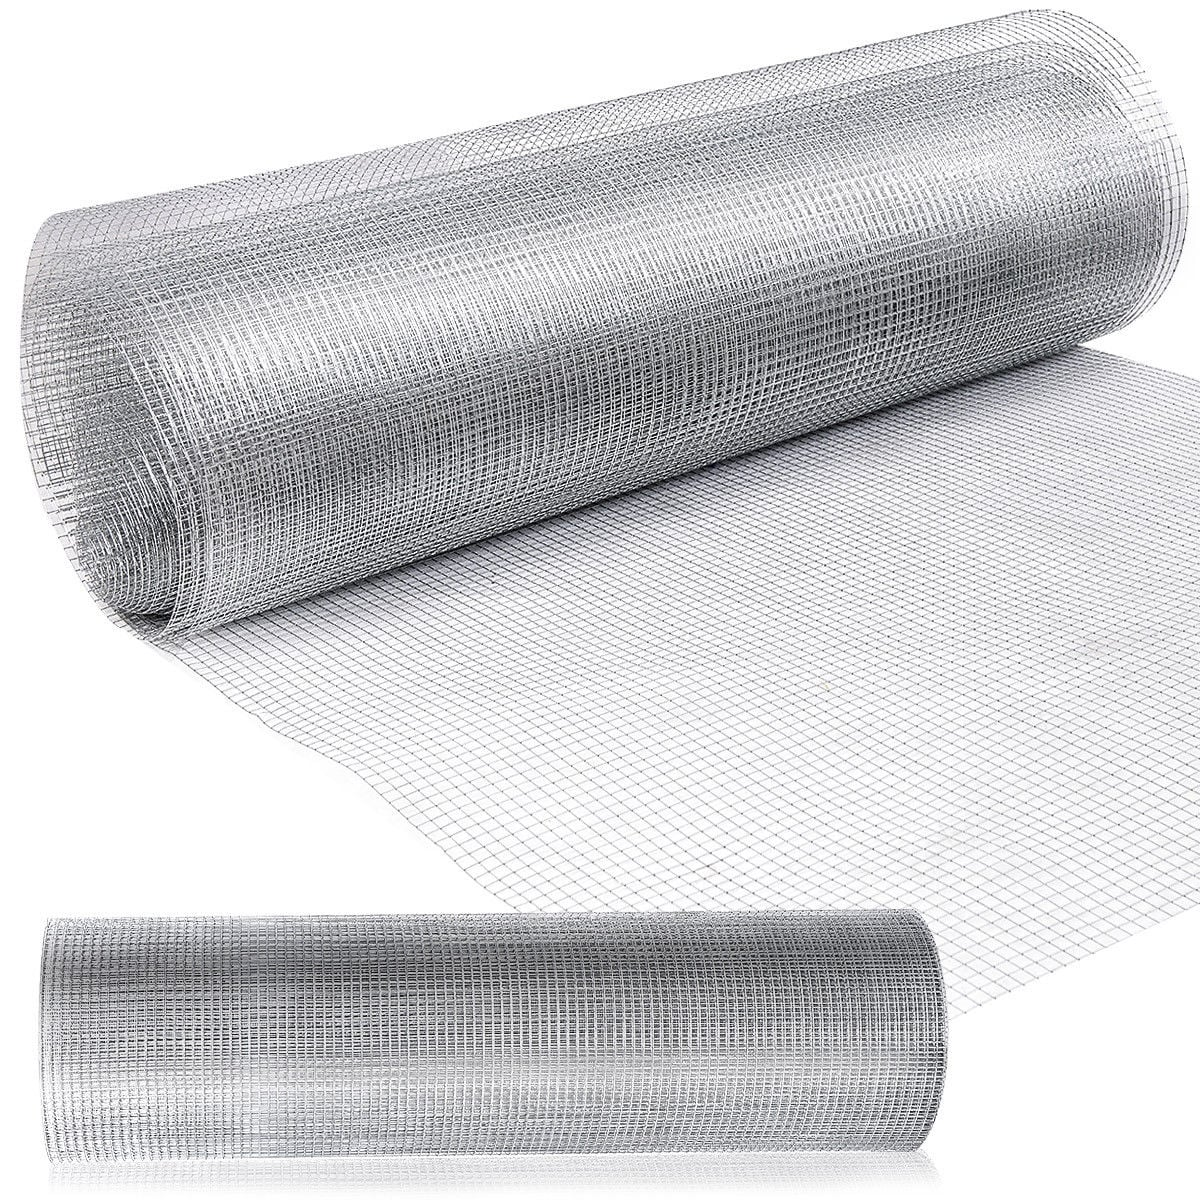 Shop Costway 48\'\' x 50\' 1/2inch Wire Fence Mesh Cage Roll Garden 19 ...